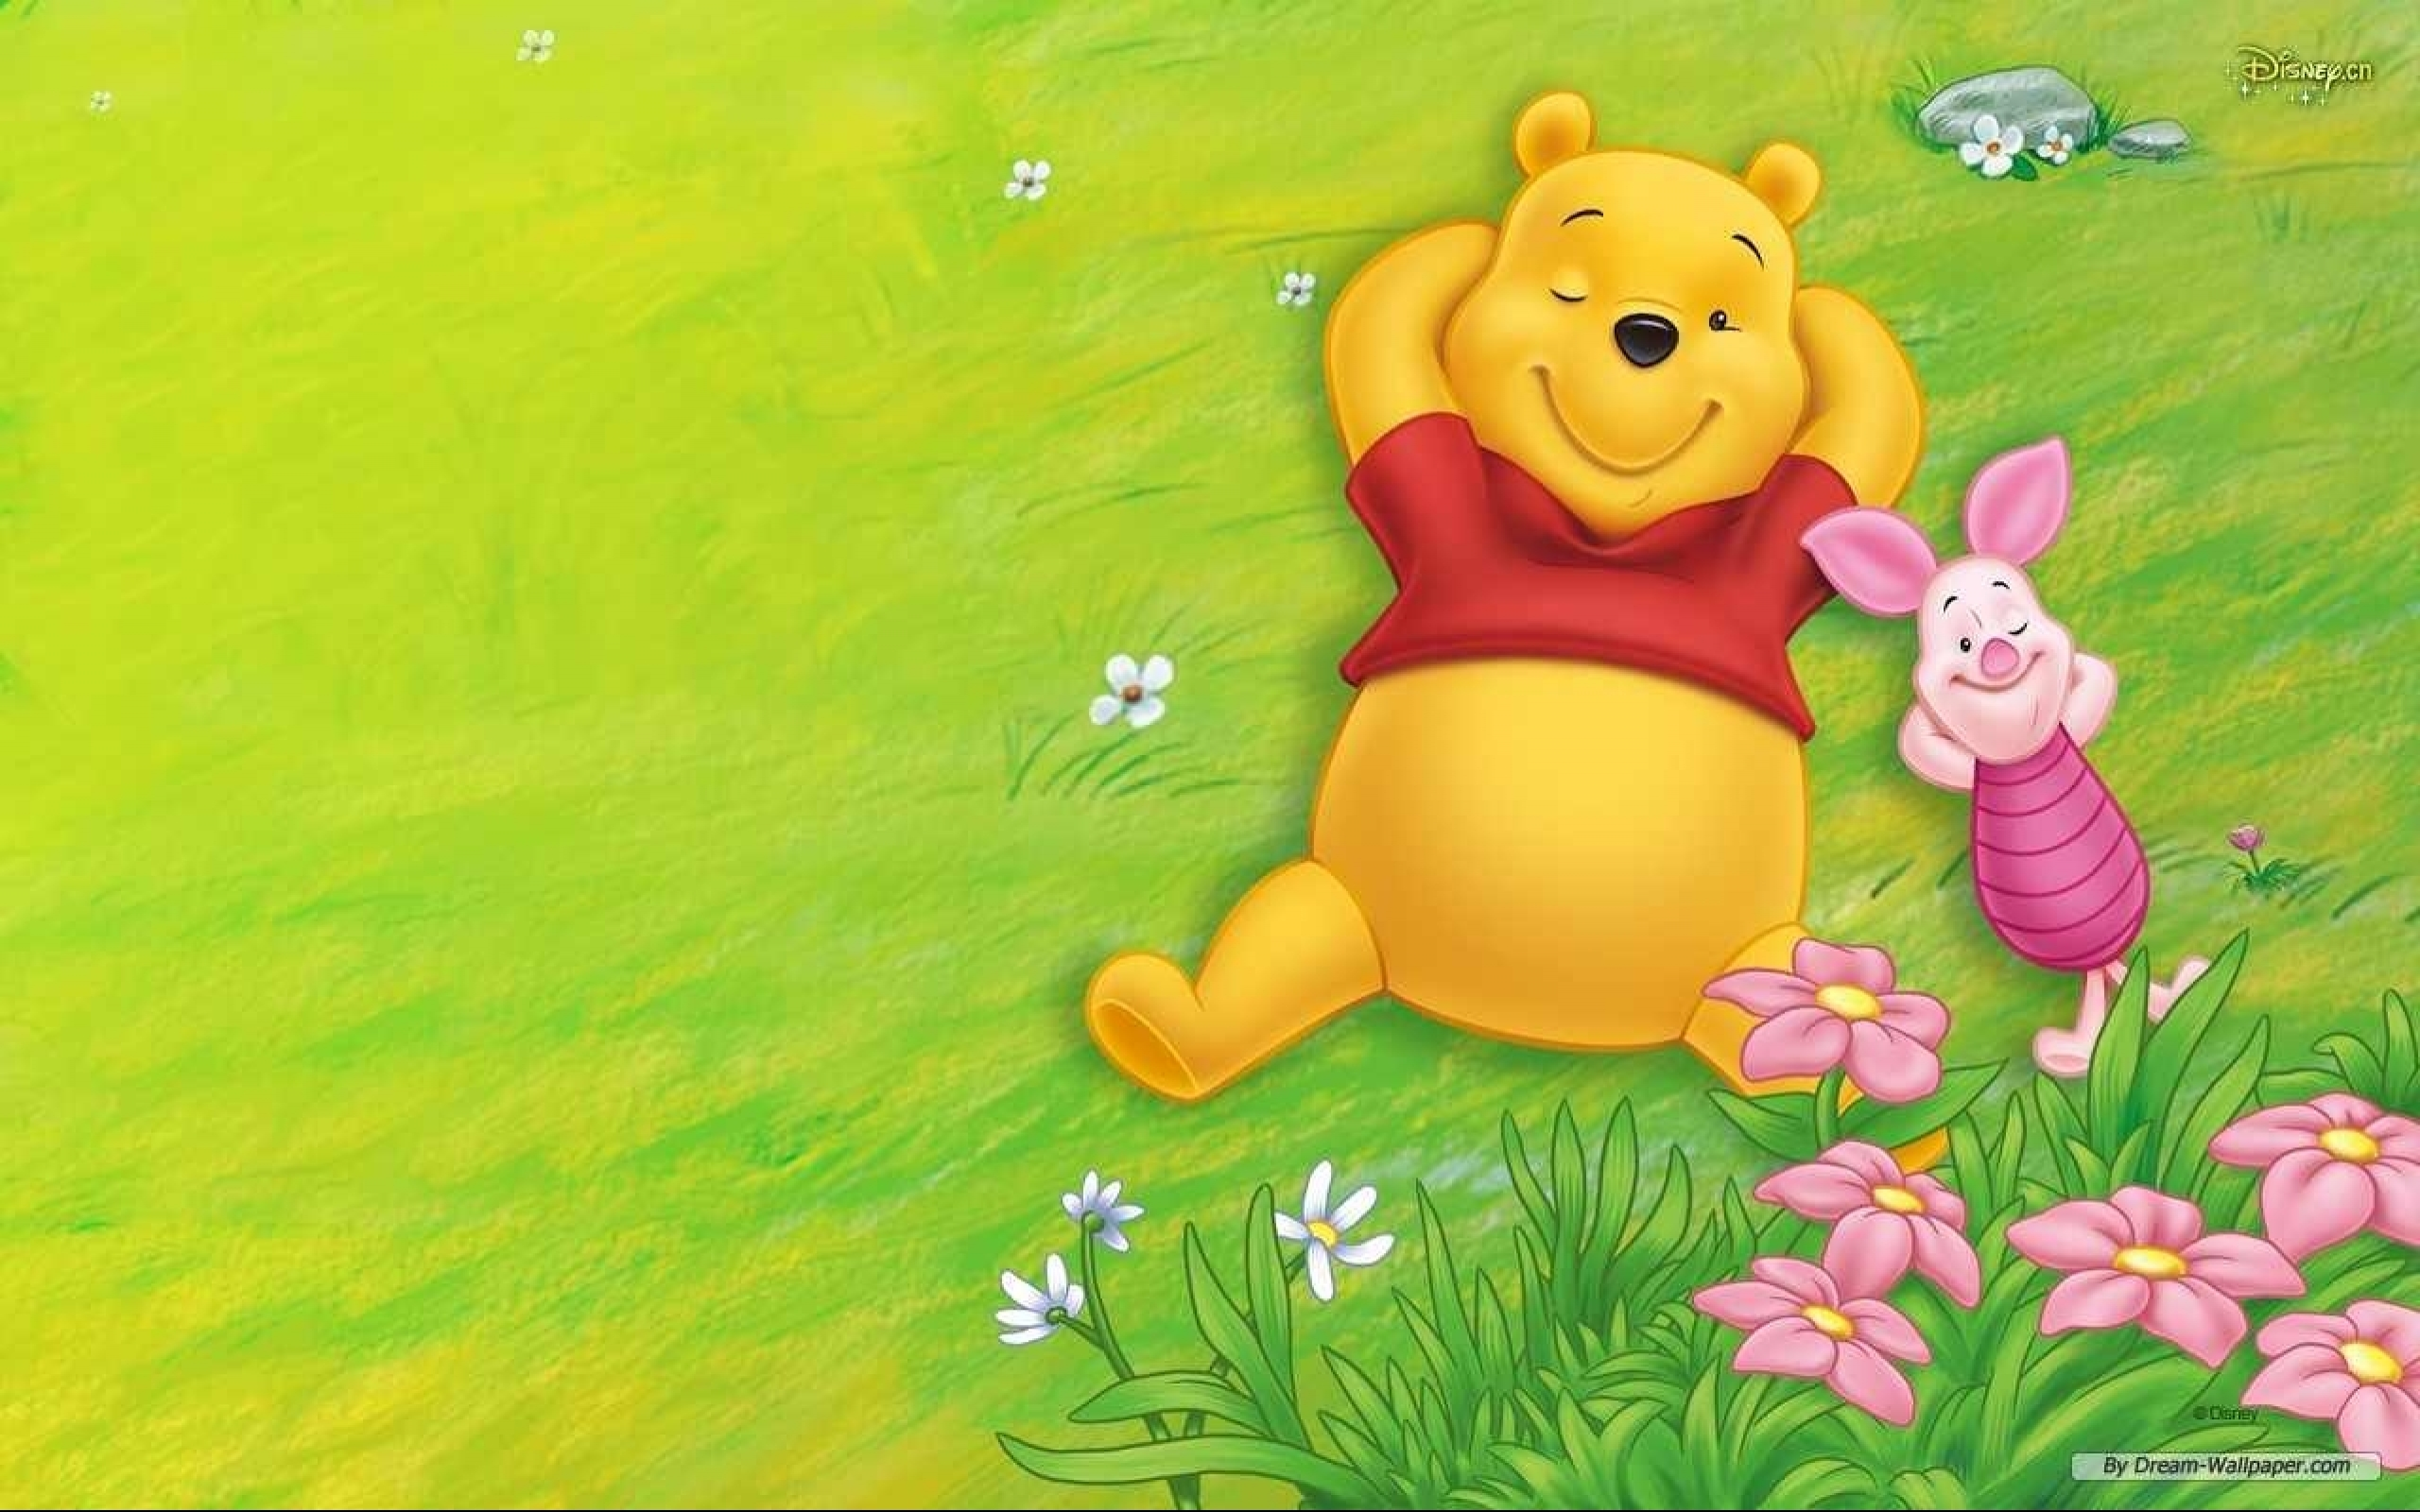 Winnie The Pooh Wallpapers HD peaceful